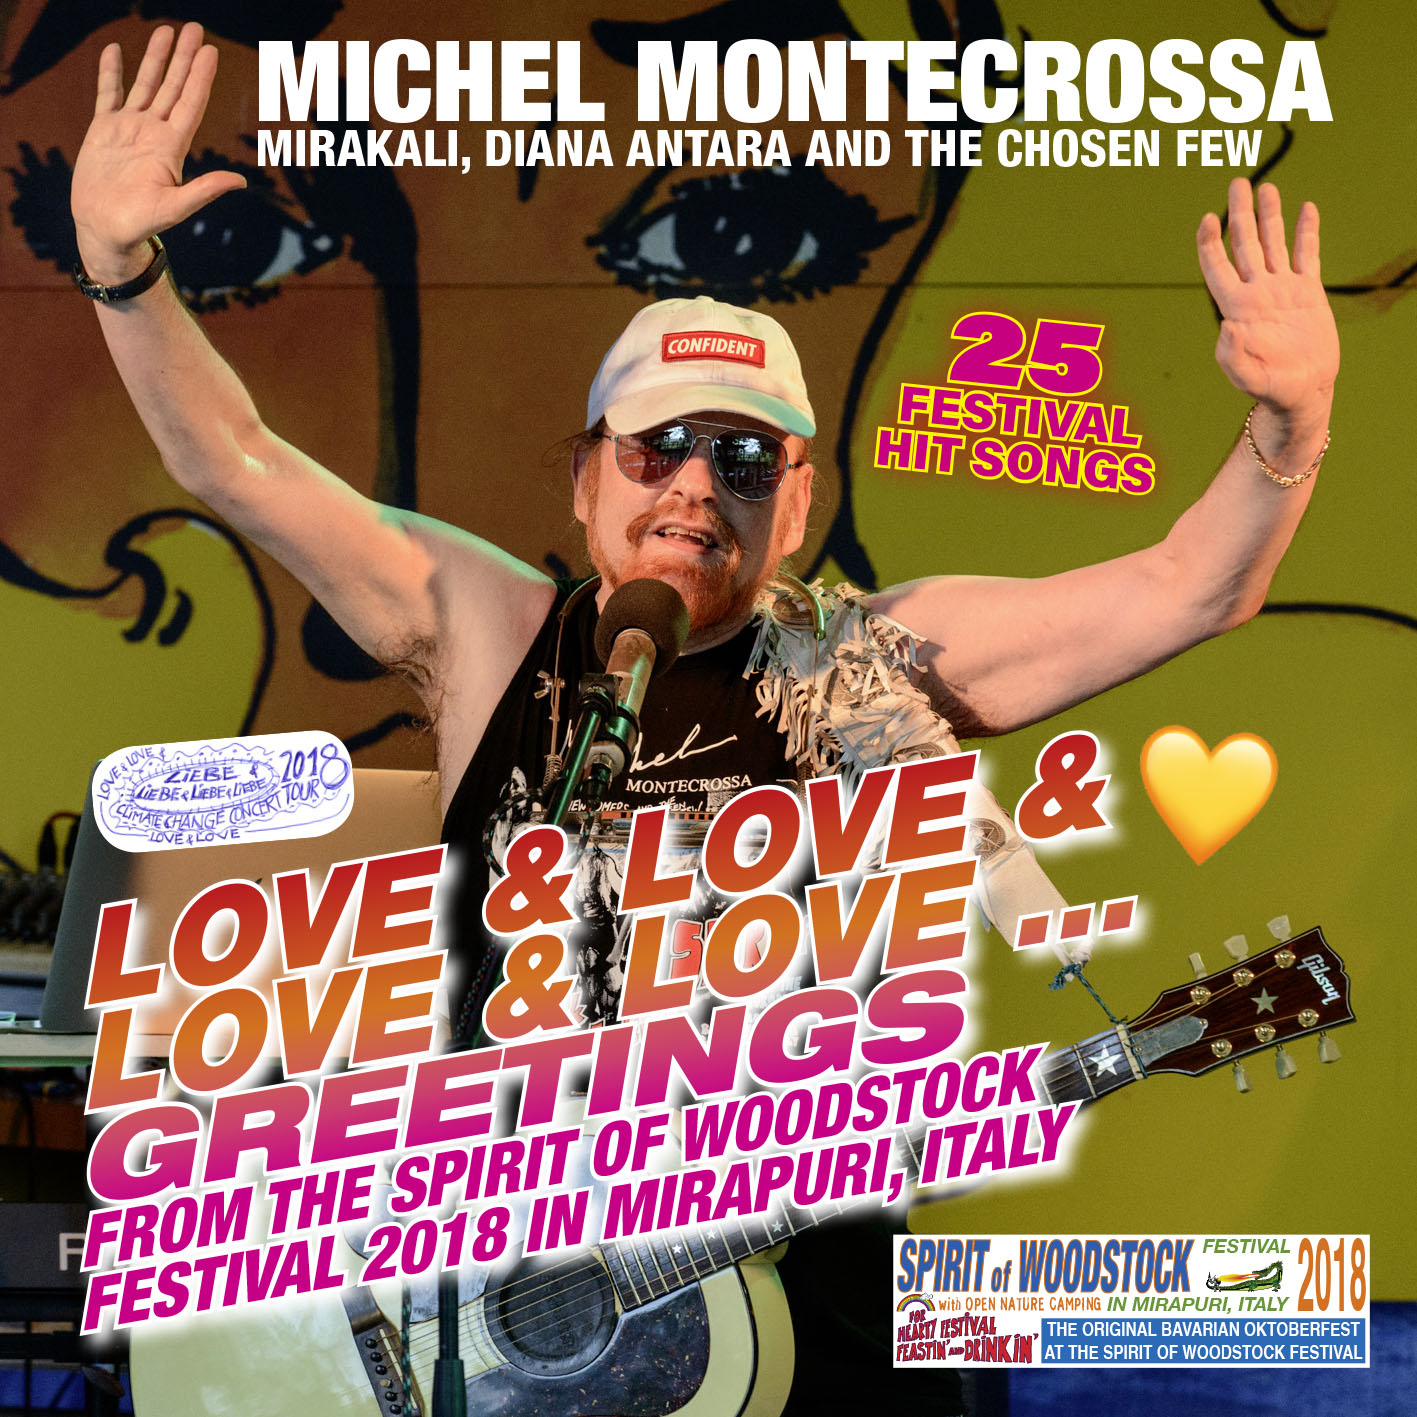 Love & Love & Love & Love Greetings from the Spirit of Woodstock Festival 2018 in Mirapuri, Itay